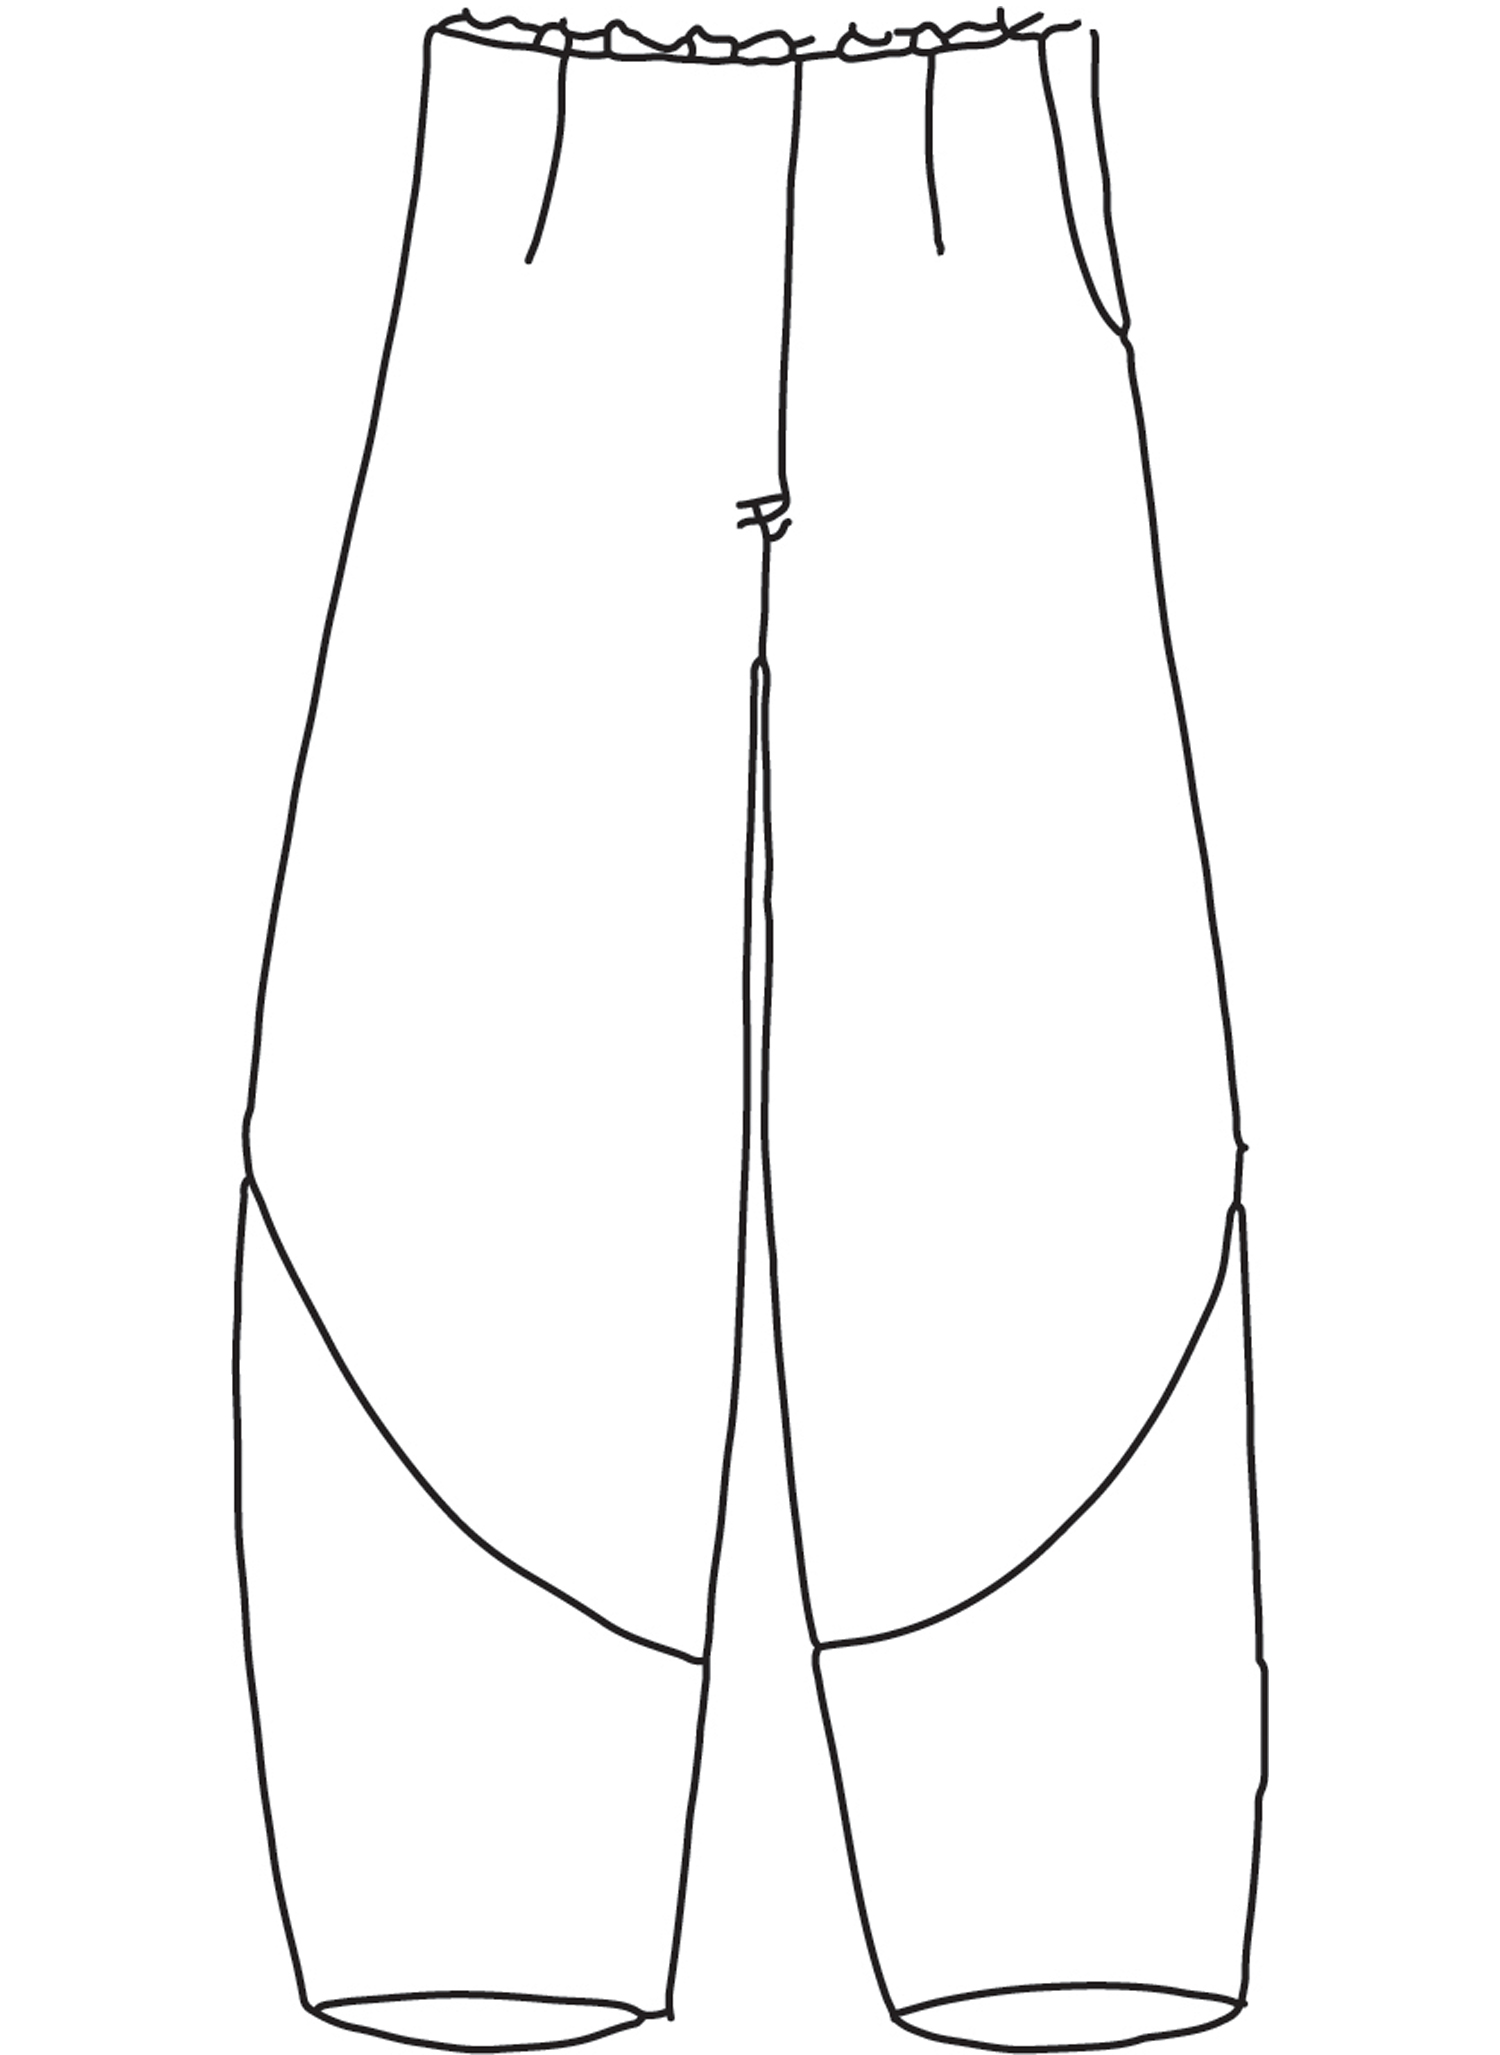 Pants For All sketch image